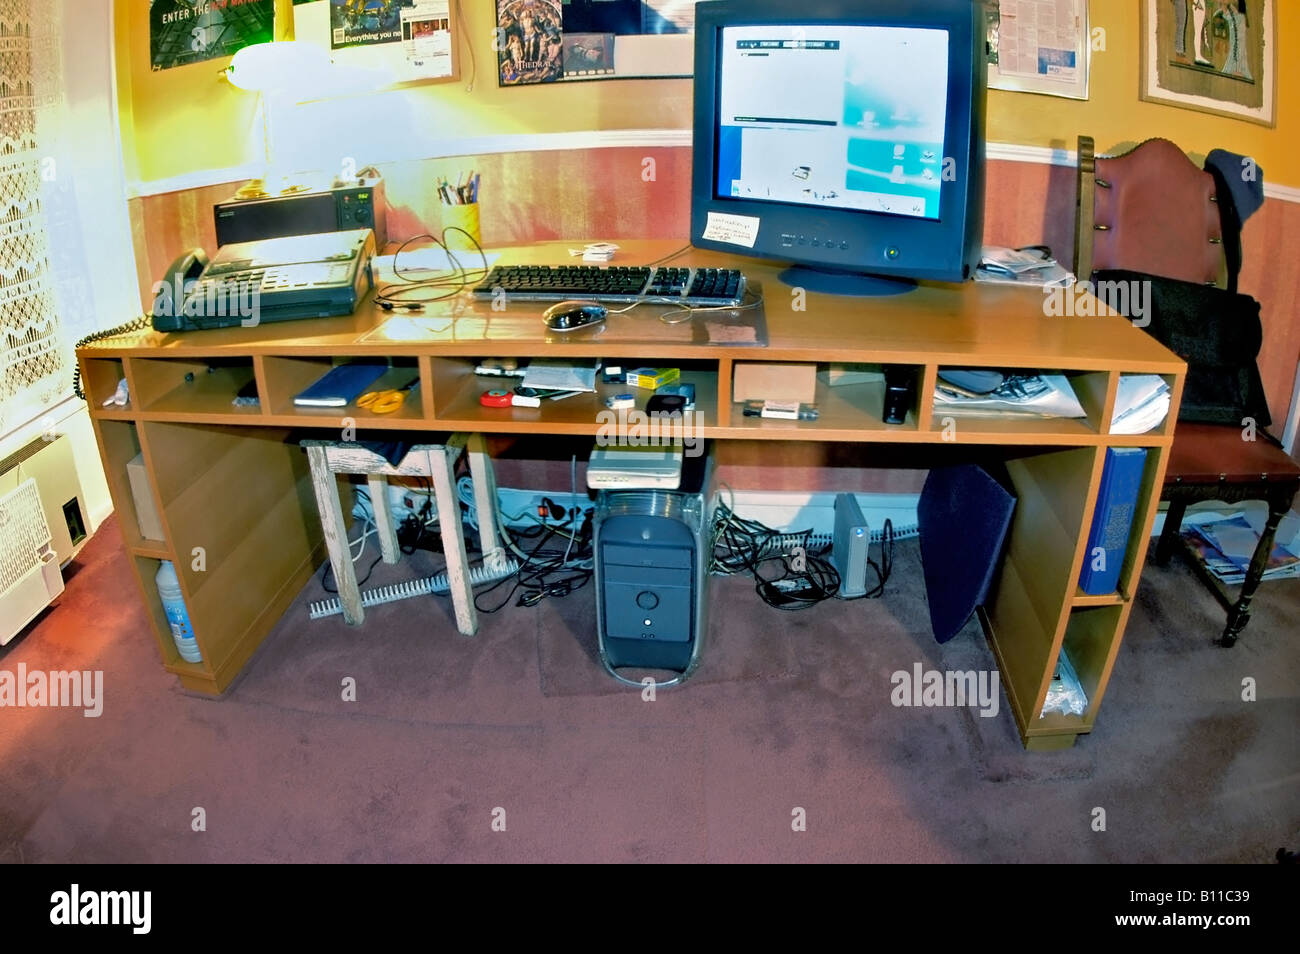 Home Office Equipment Desk with Computer mac - Stock Image